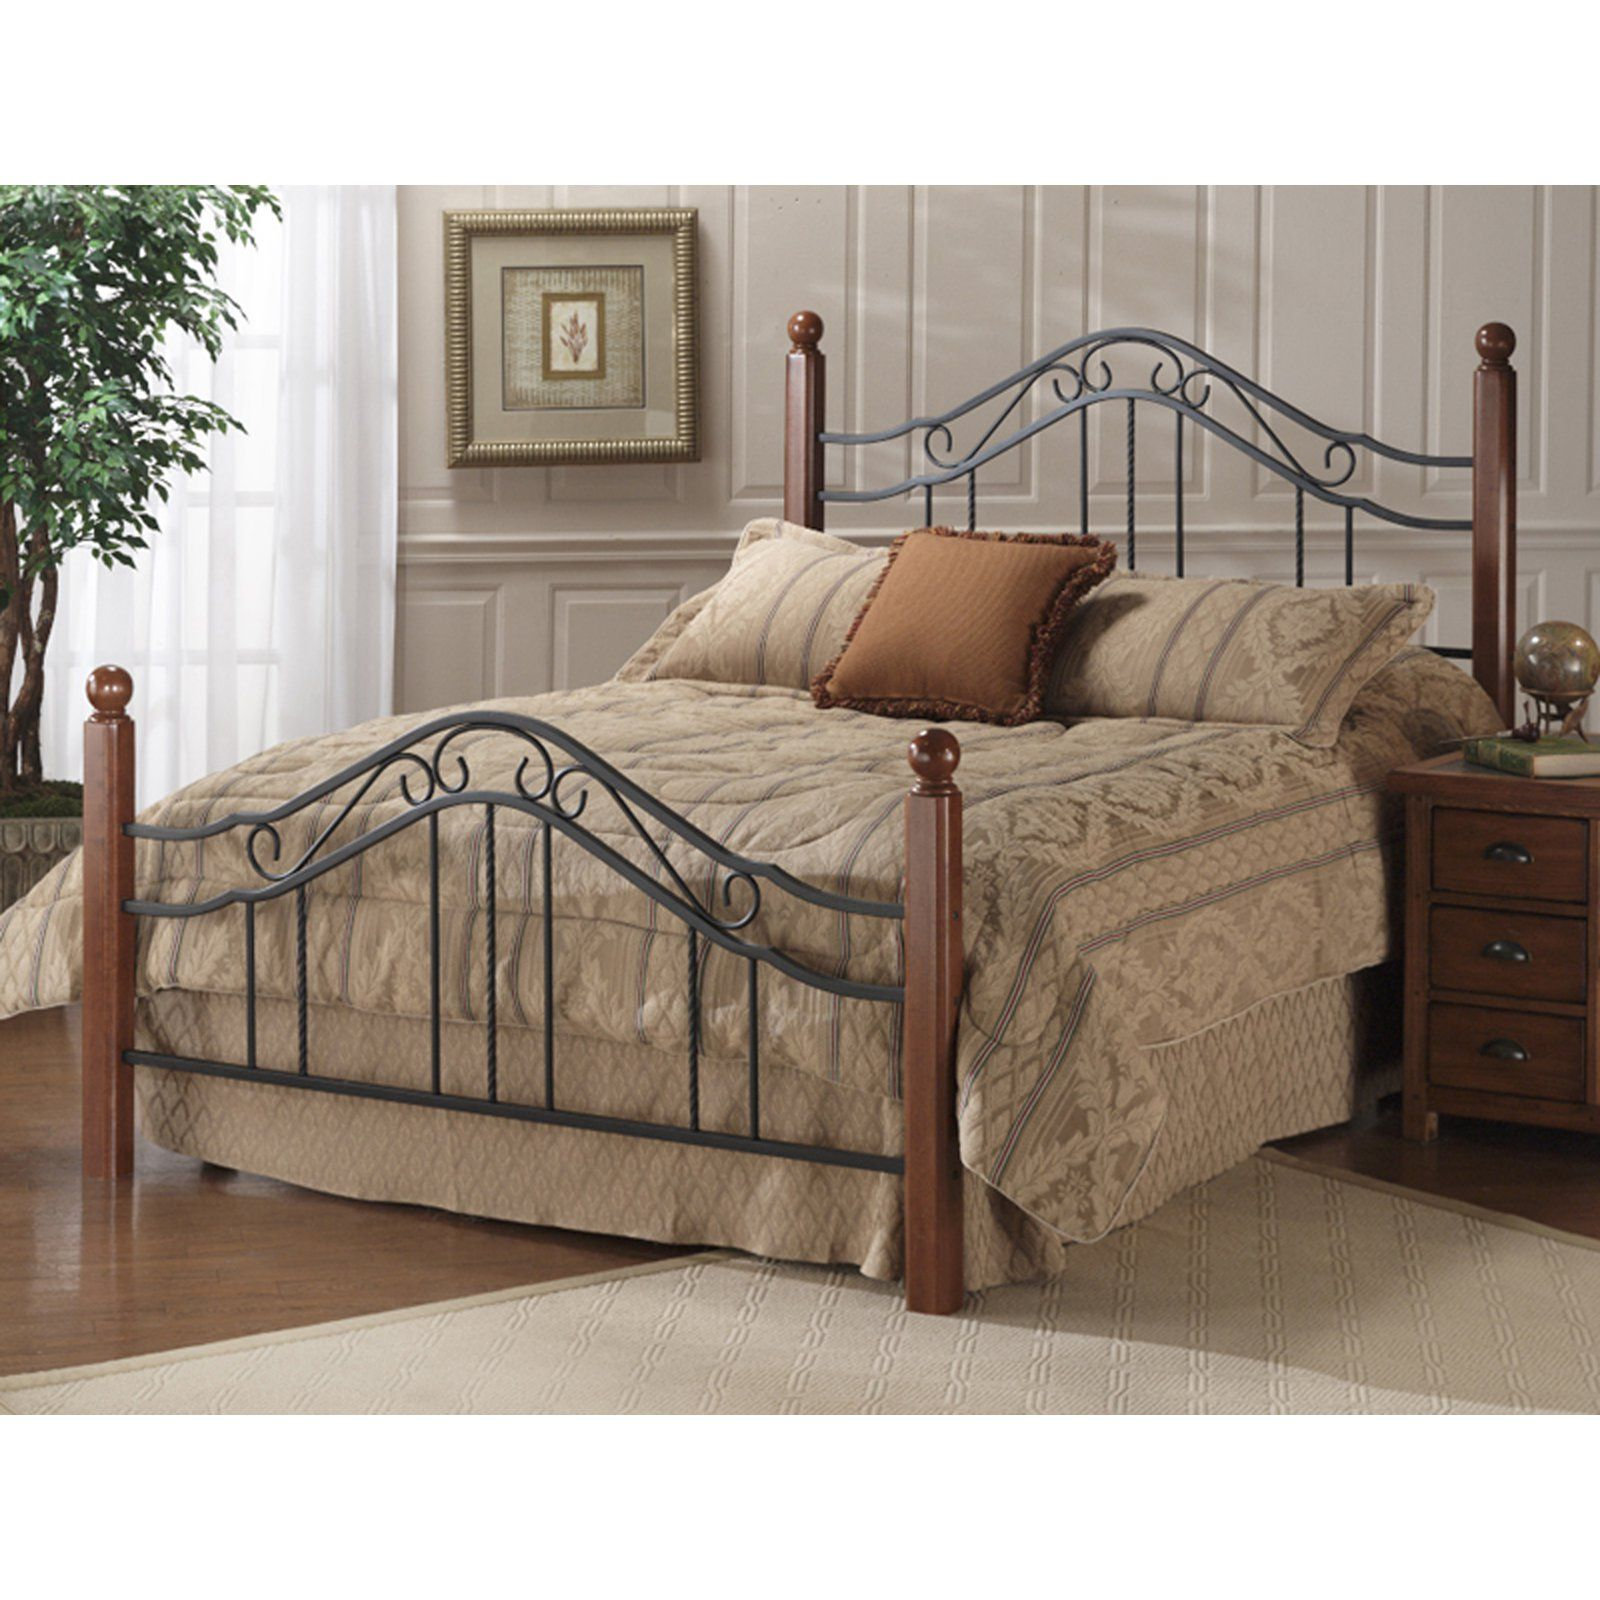 Hillsdale Madison Bed In 2021 Iron Headboard Wrought Iron Headboard Iron Bed Wood headboard and footboard sets